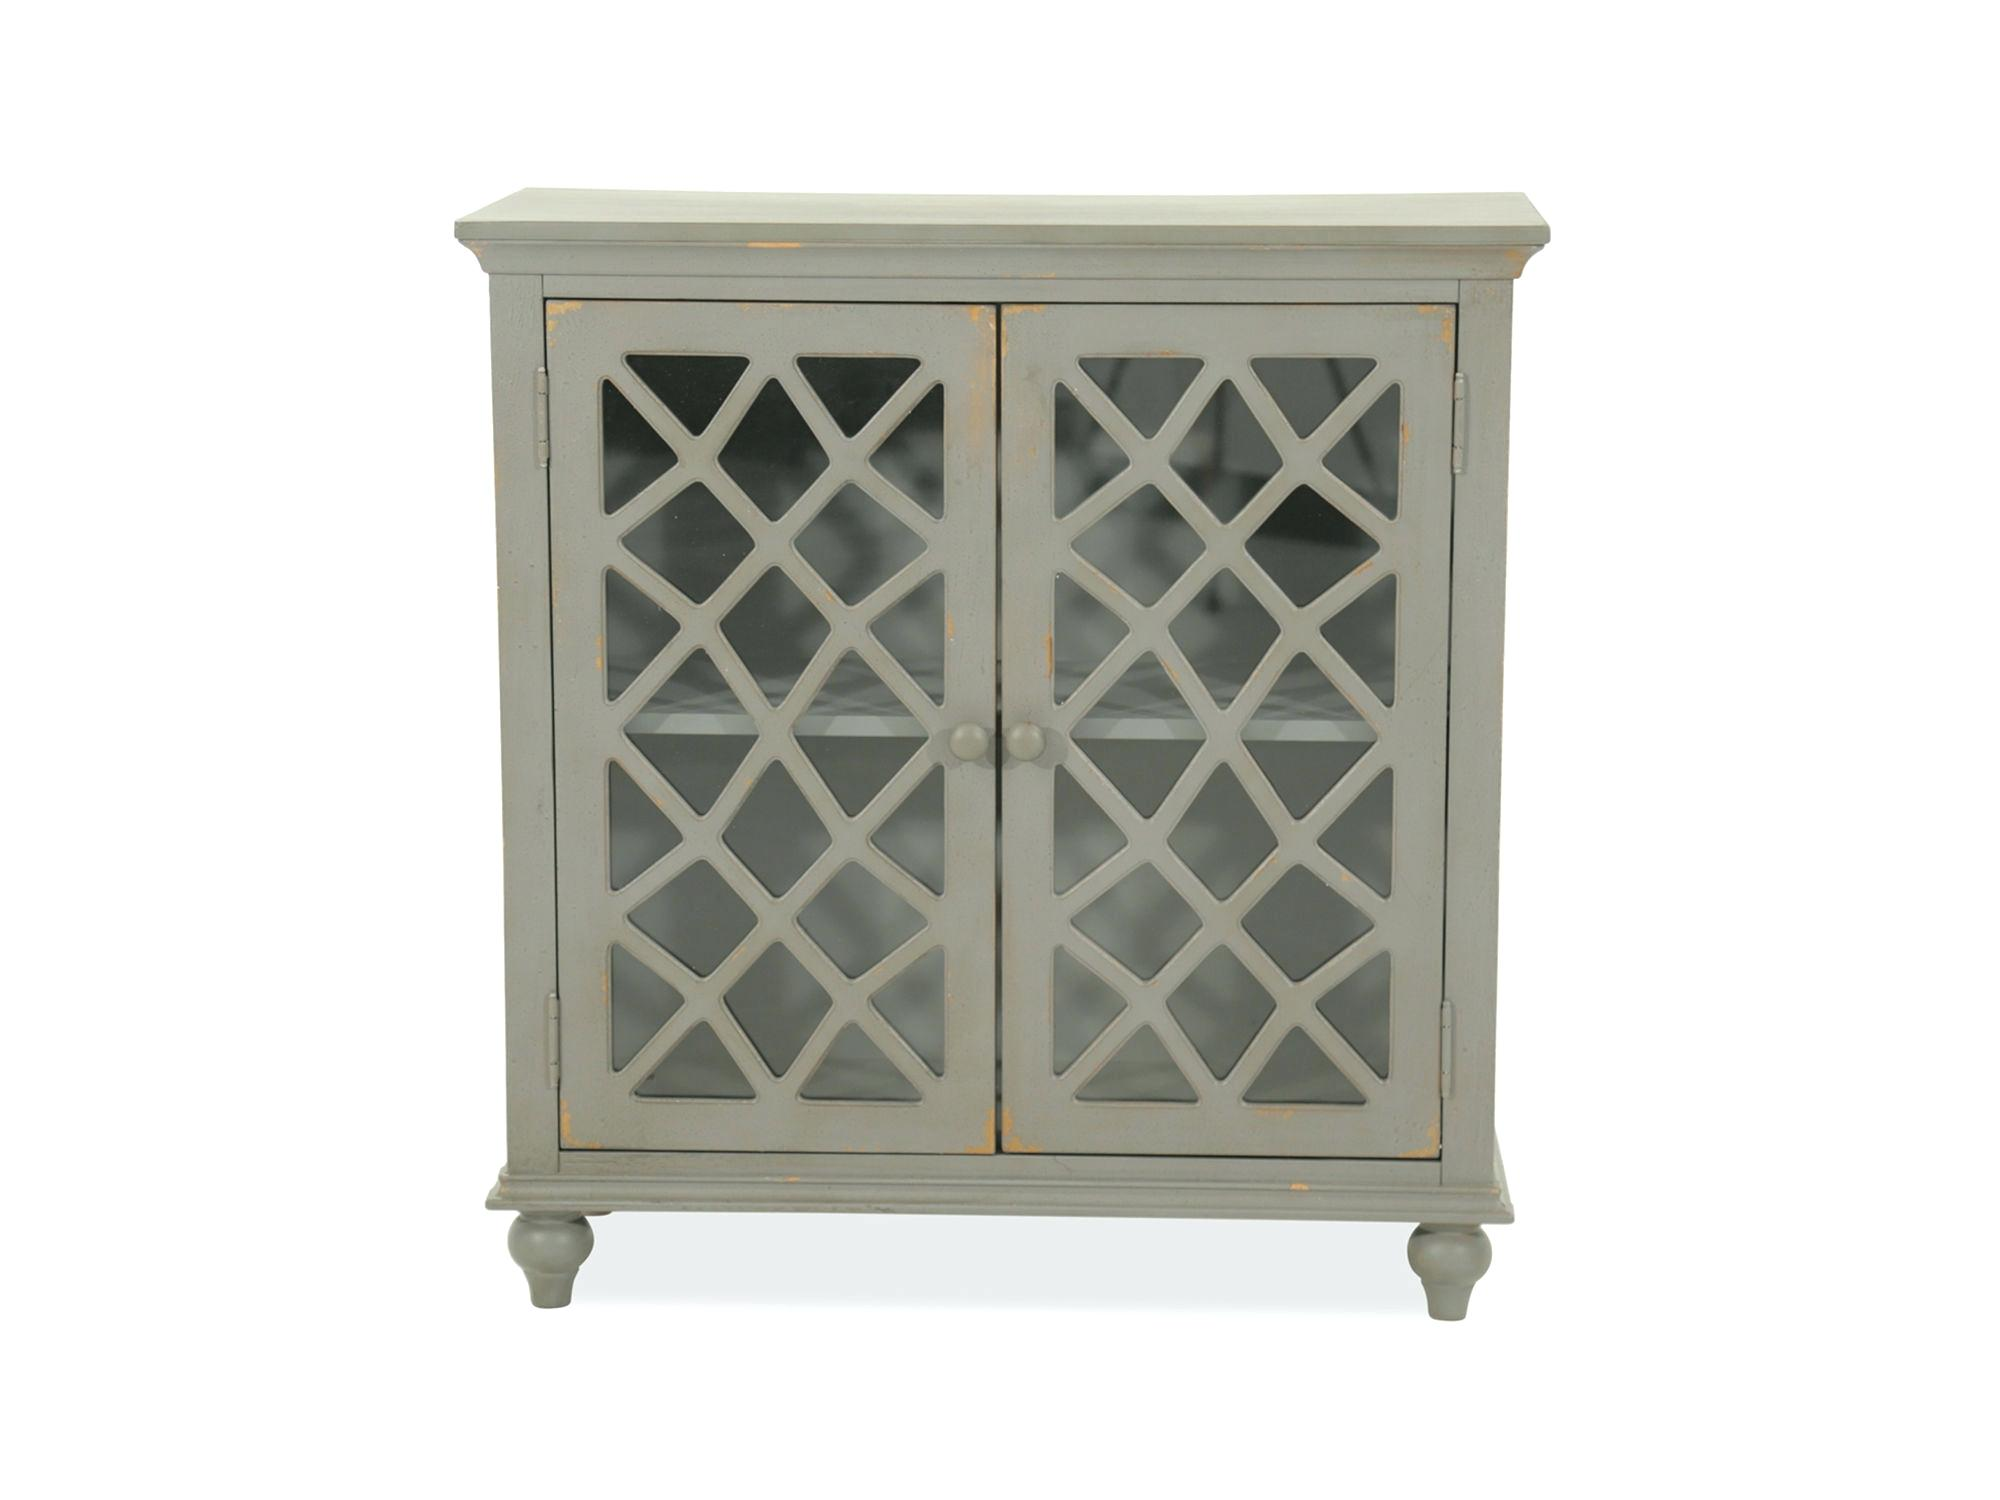 accent table with doors homey design front door decor lattice cottage small ethan allen bedroom pier imports sofas tiffany butterfly tablecloth for round outdoor lounge chairs